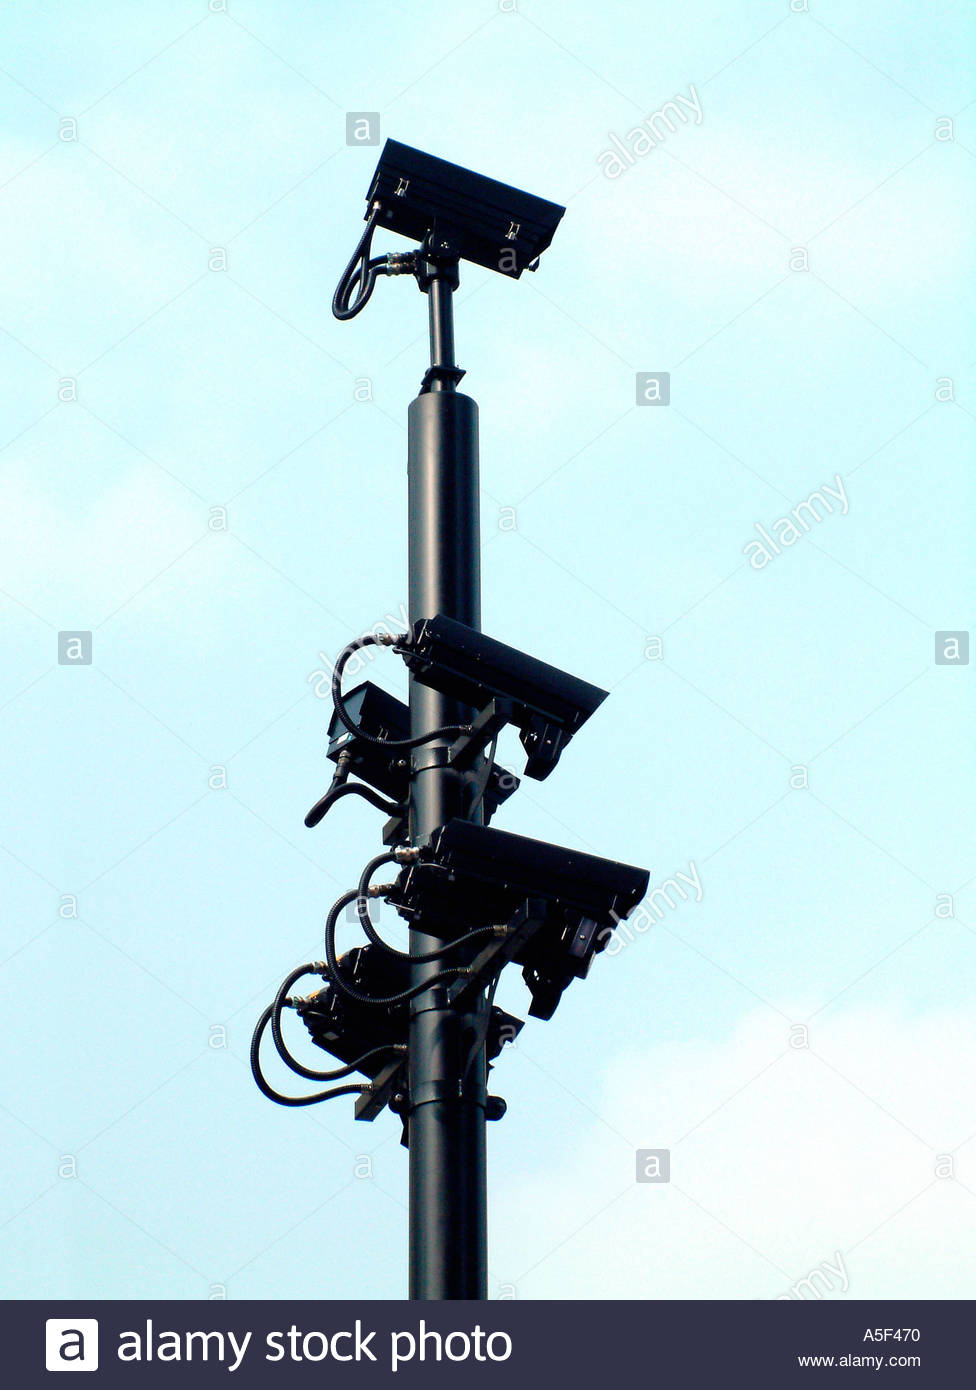 Congestion charging video cameras in London - Stock Image